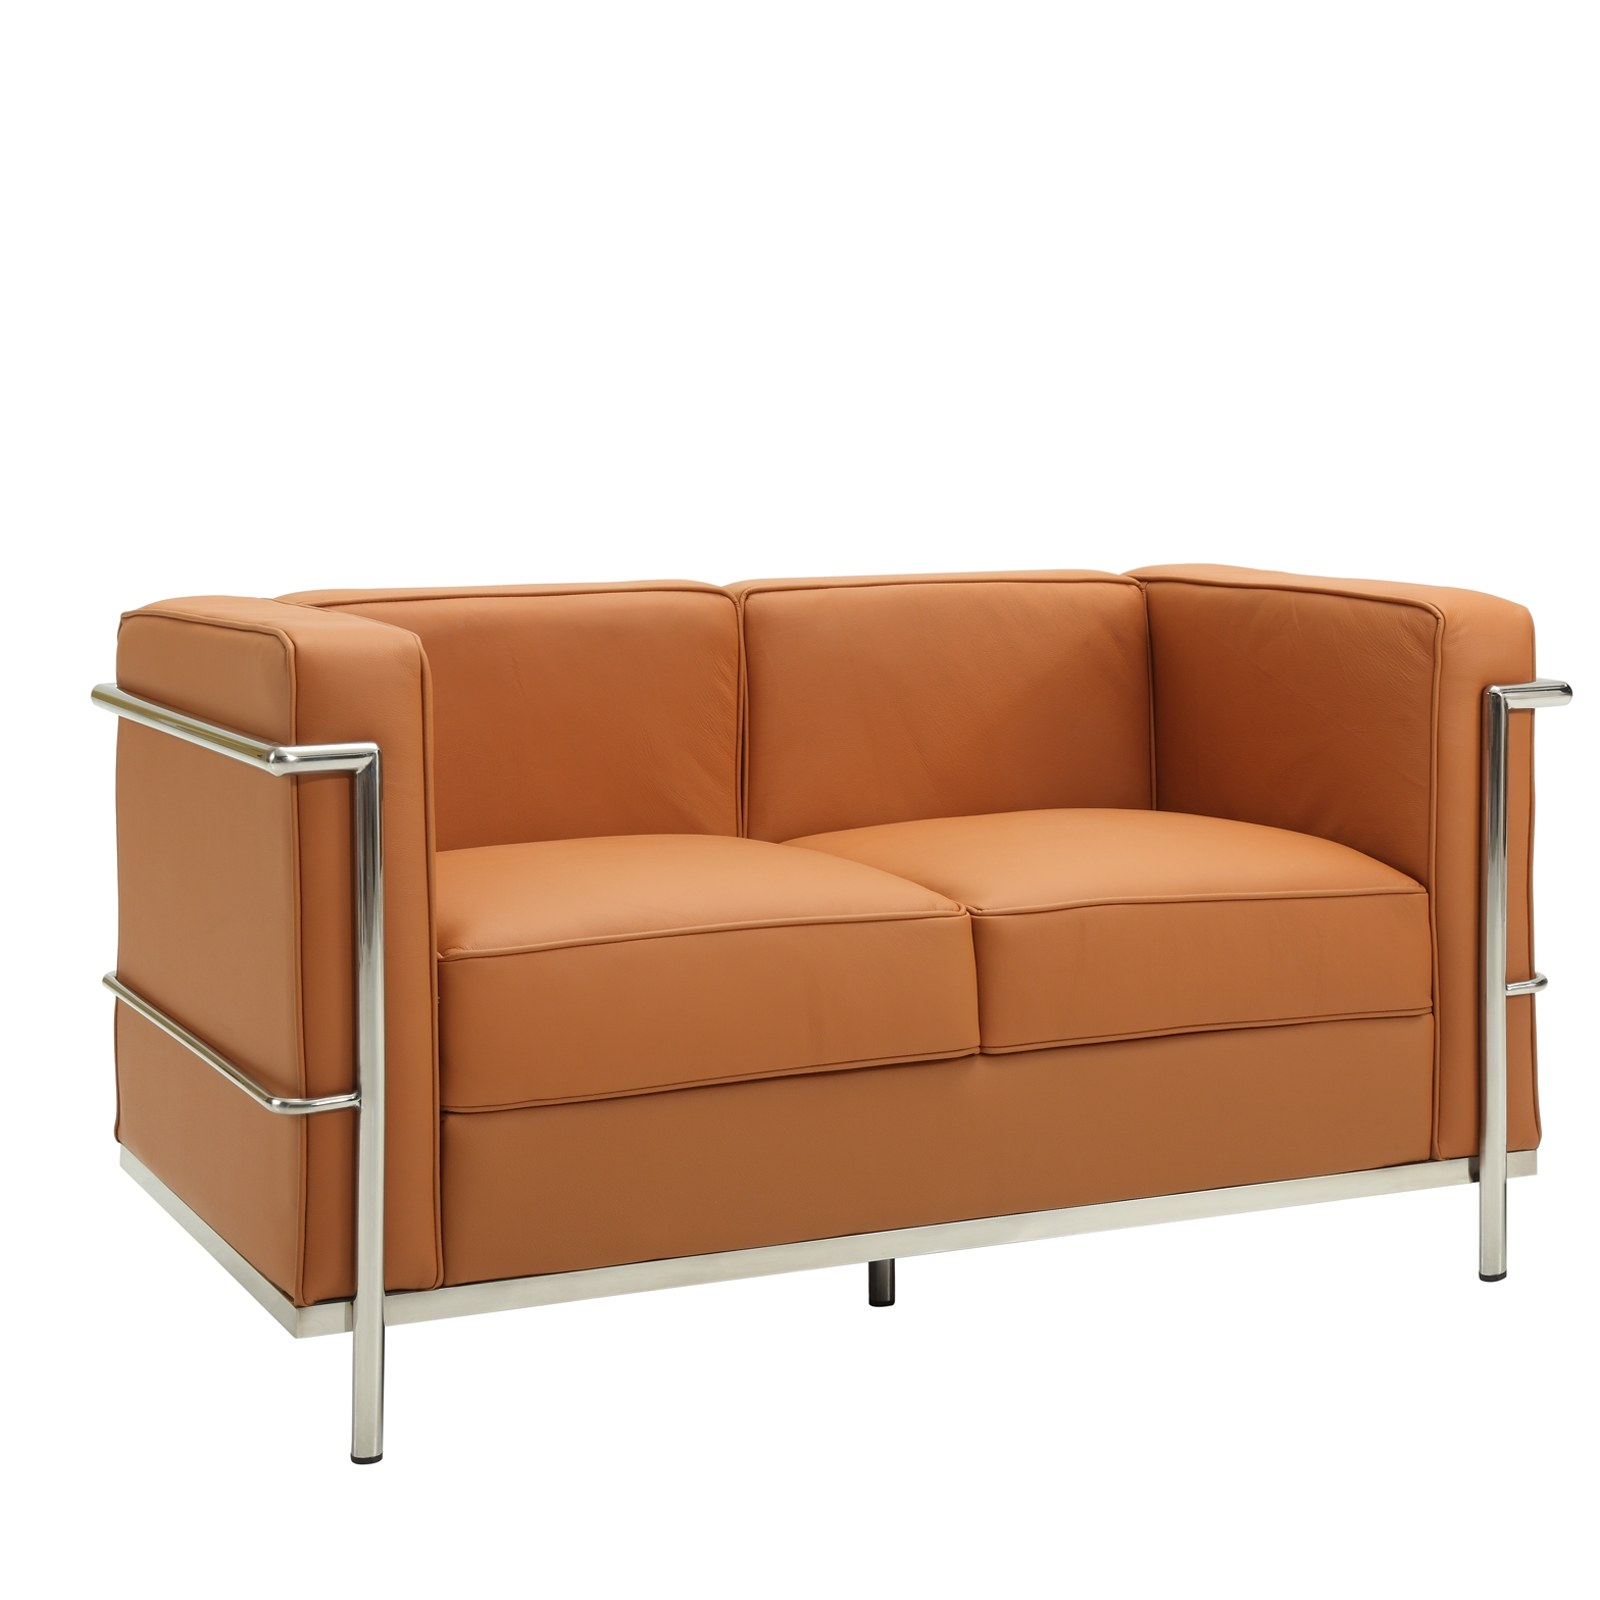 haverhill set tn cambridge sofa cocktail room in living ottoman piece tan loveseat chair accent four and p